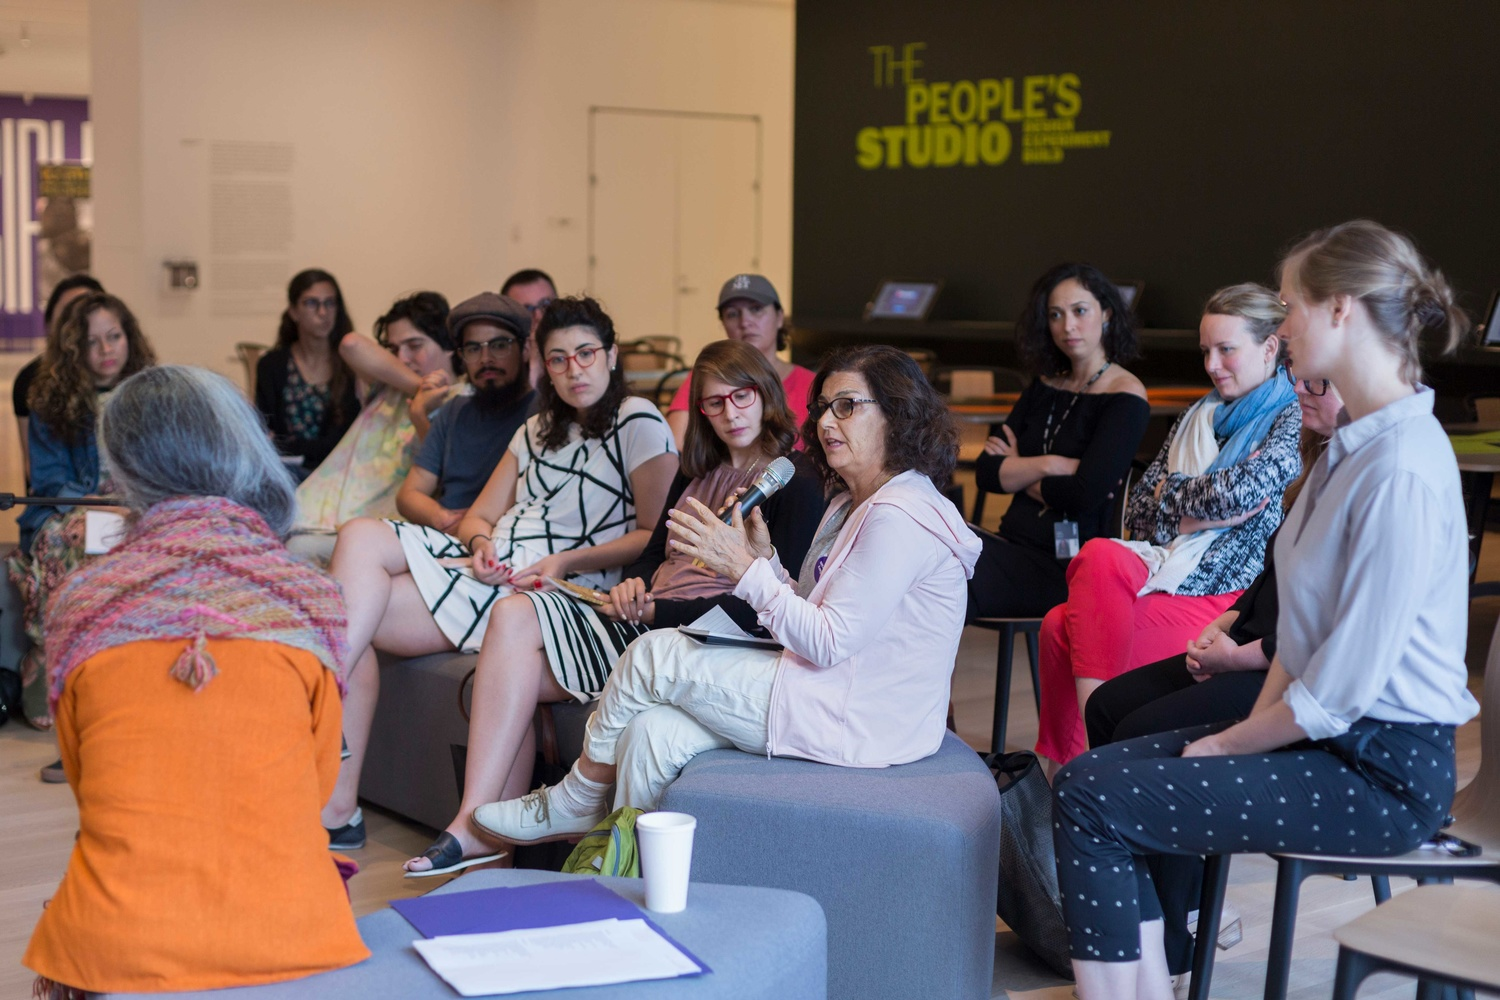 Art and Practice with Cecilia Vicuña, June 28, 2017, The Museum of Modern Art. Photo: Beatriz Meseguer/onwhitewall.com. © 2017 The Museum of Modern Art, New York